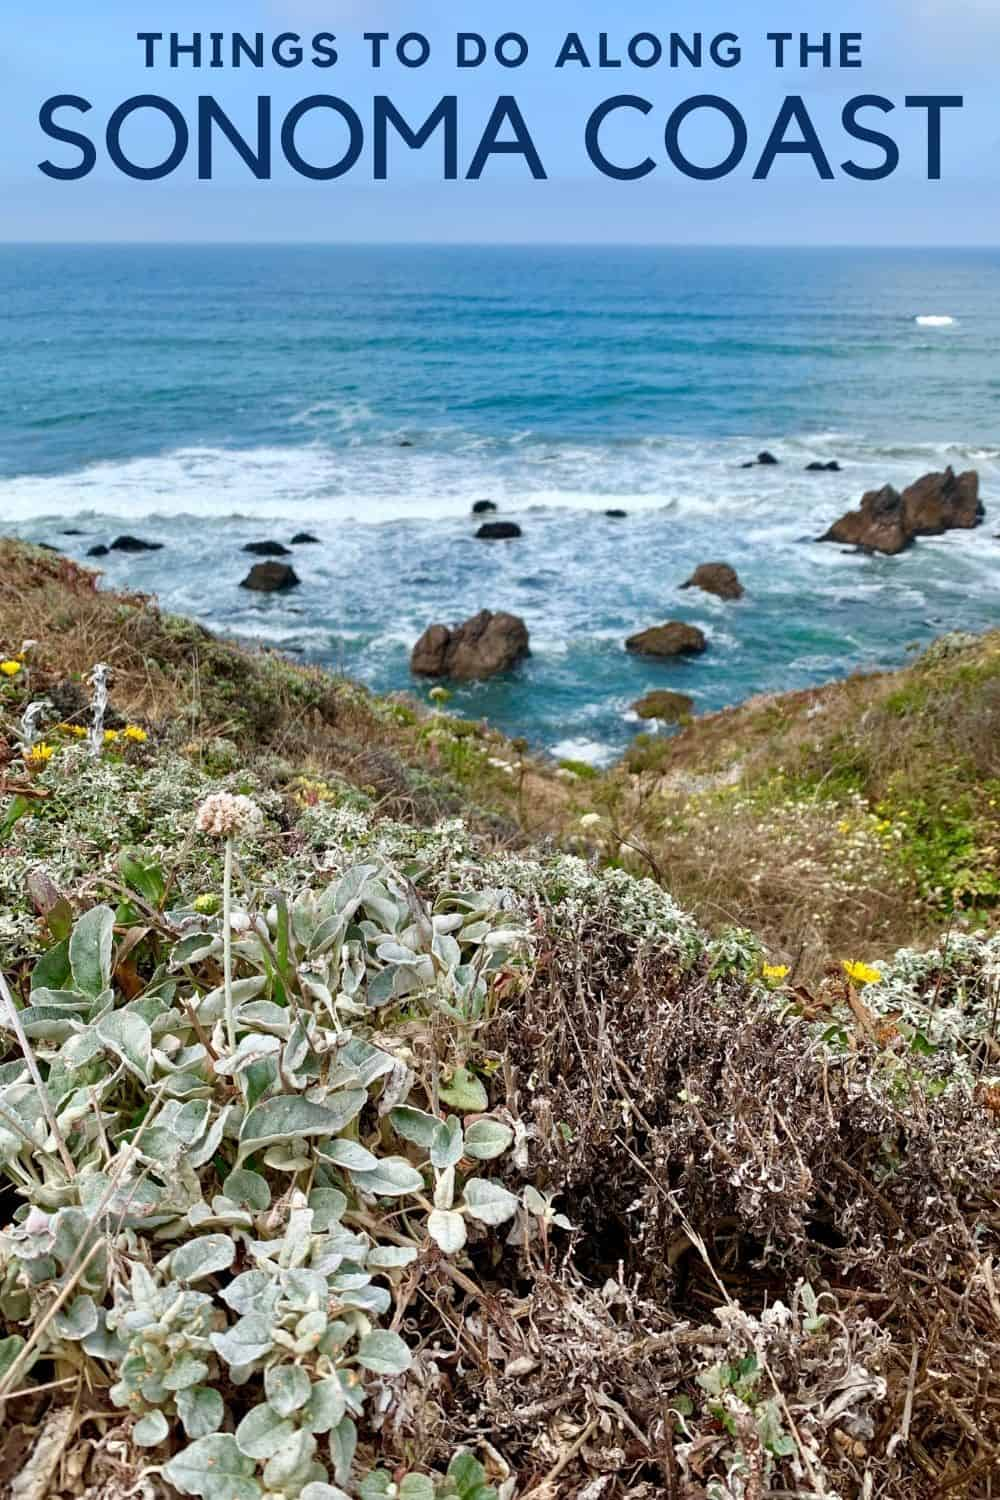 What to Do Along California's Sonoma Coast | This stretch of coastline has stunning views, awesome hiking, proximity to wine country, & great food. Things to do on the Sonoma Coast, what to see on the Sonoma Coast, tips & more! Northern California coast roadtrip ideas. #sonomacoast #california #roadtrip #northerncalifornia #bodegabay